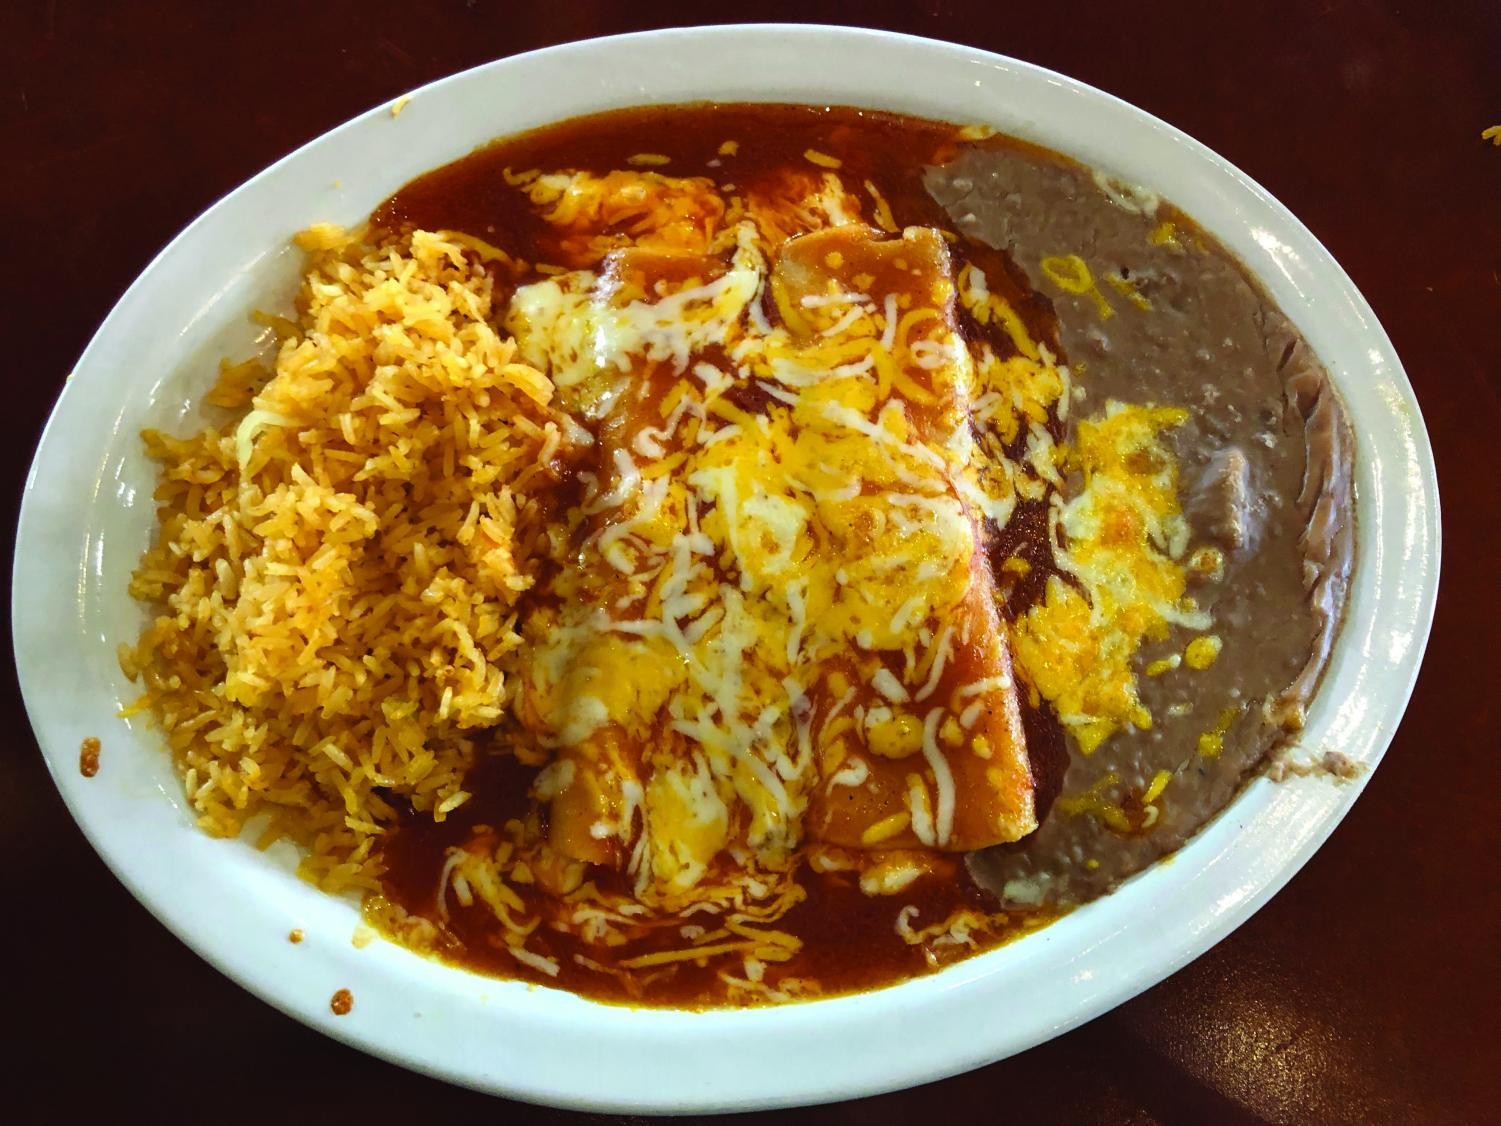 The Three Enchilada dish served at Sinaloa.